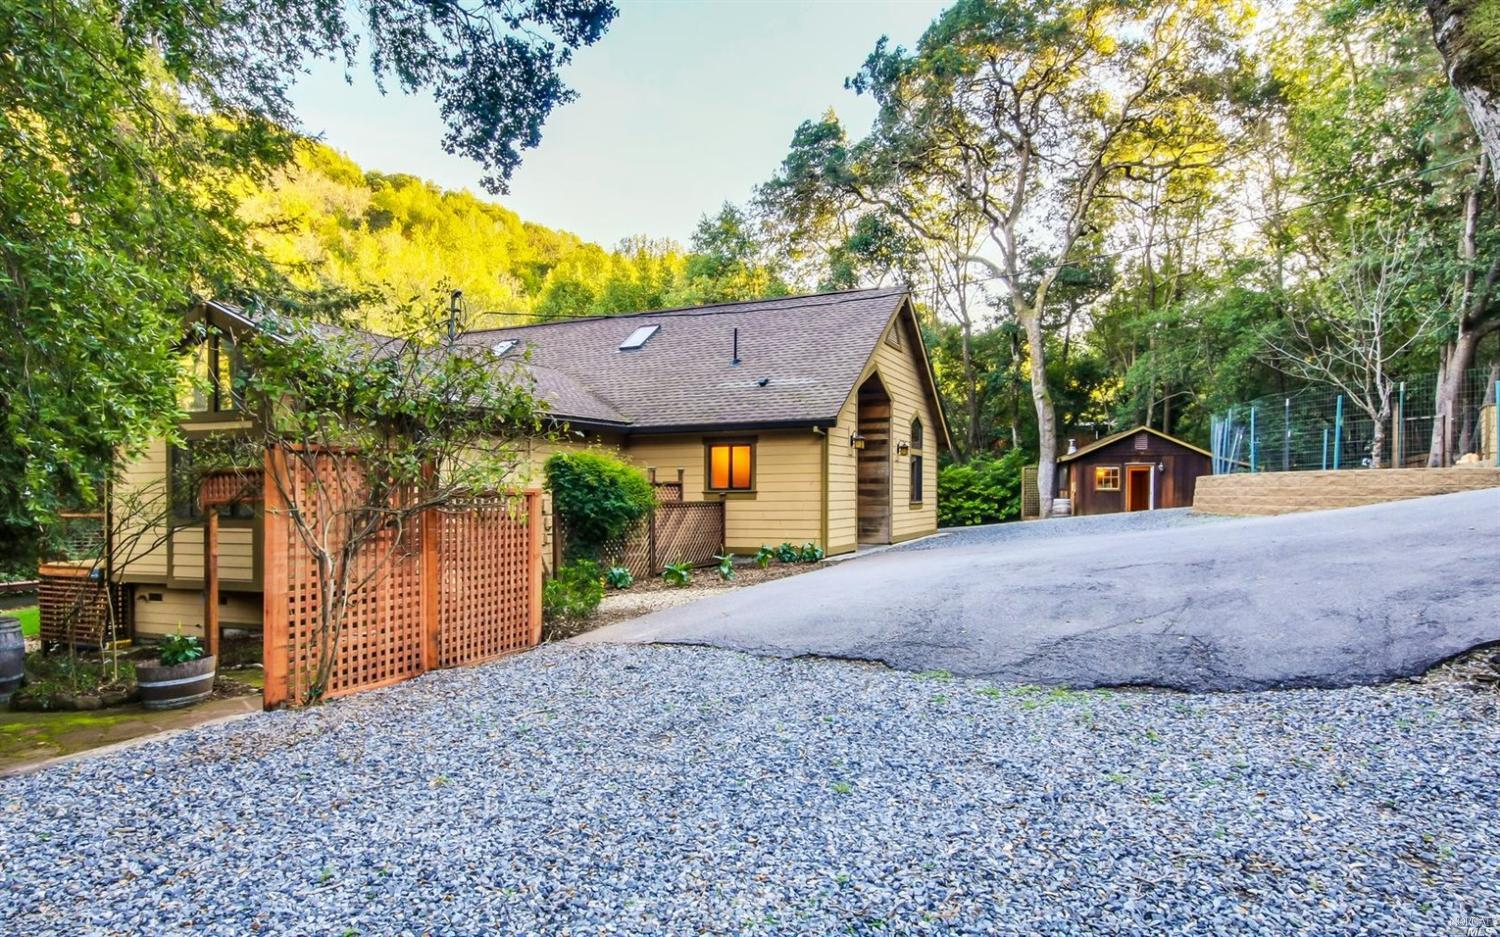 1617 Indian Valley Rd, Novato, CA